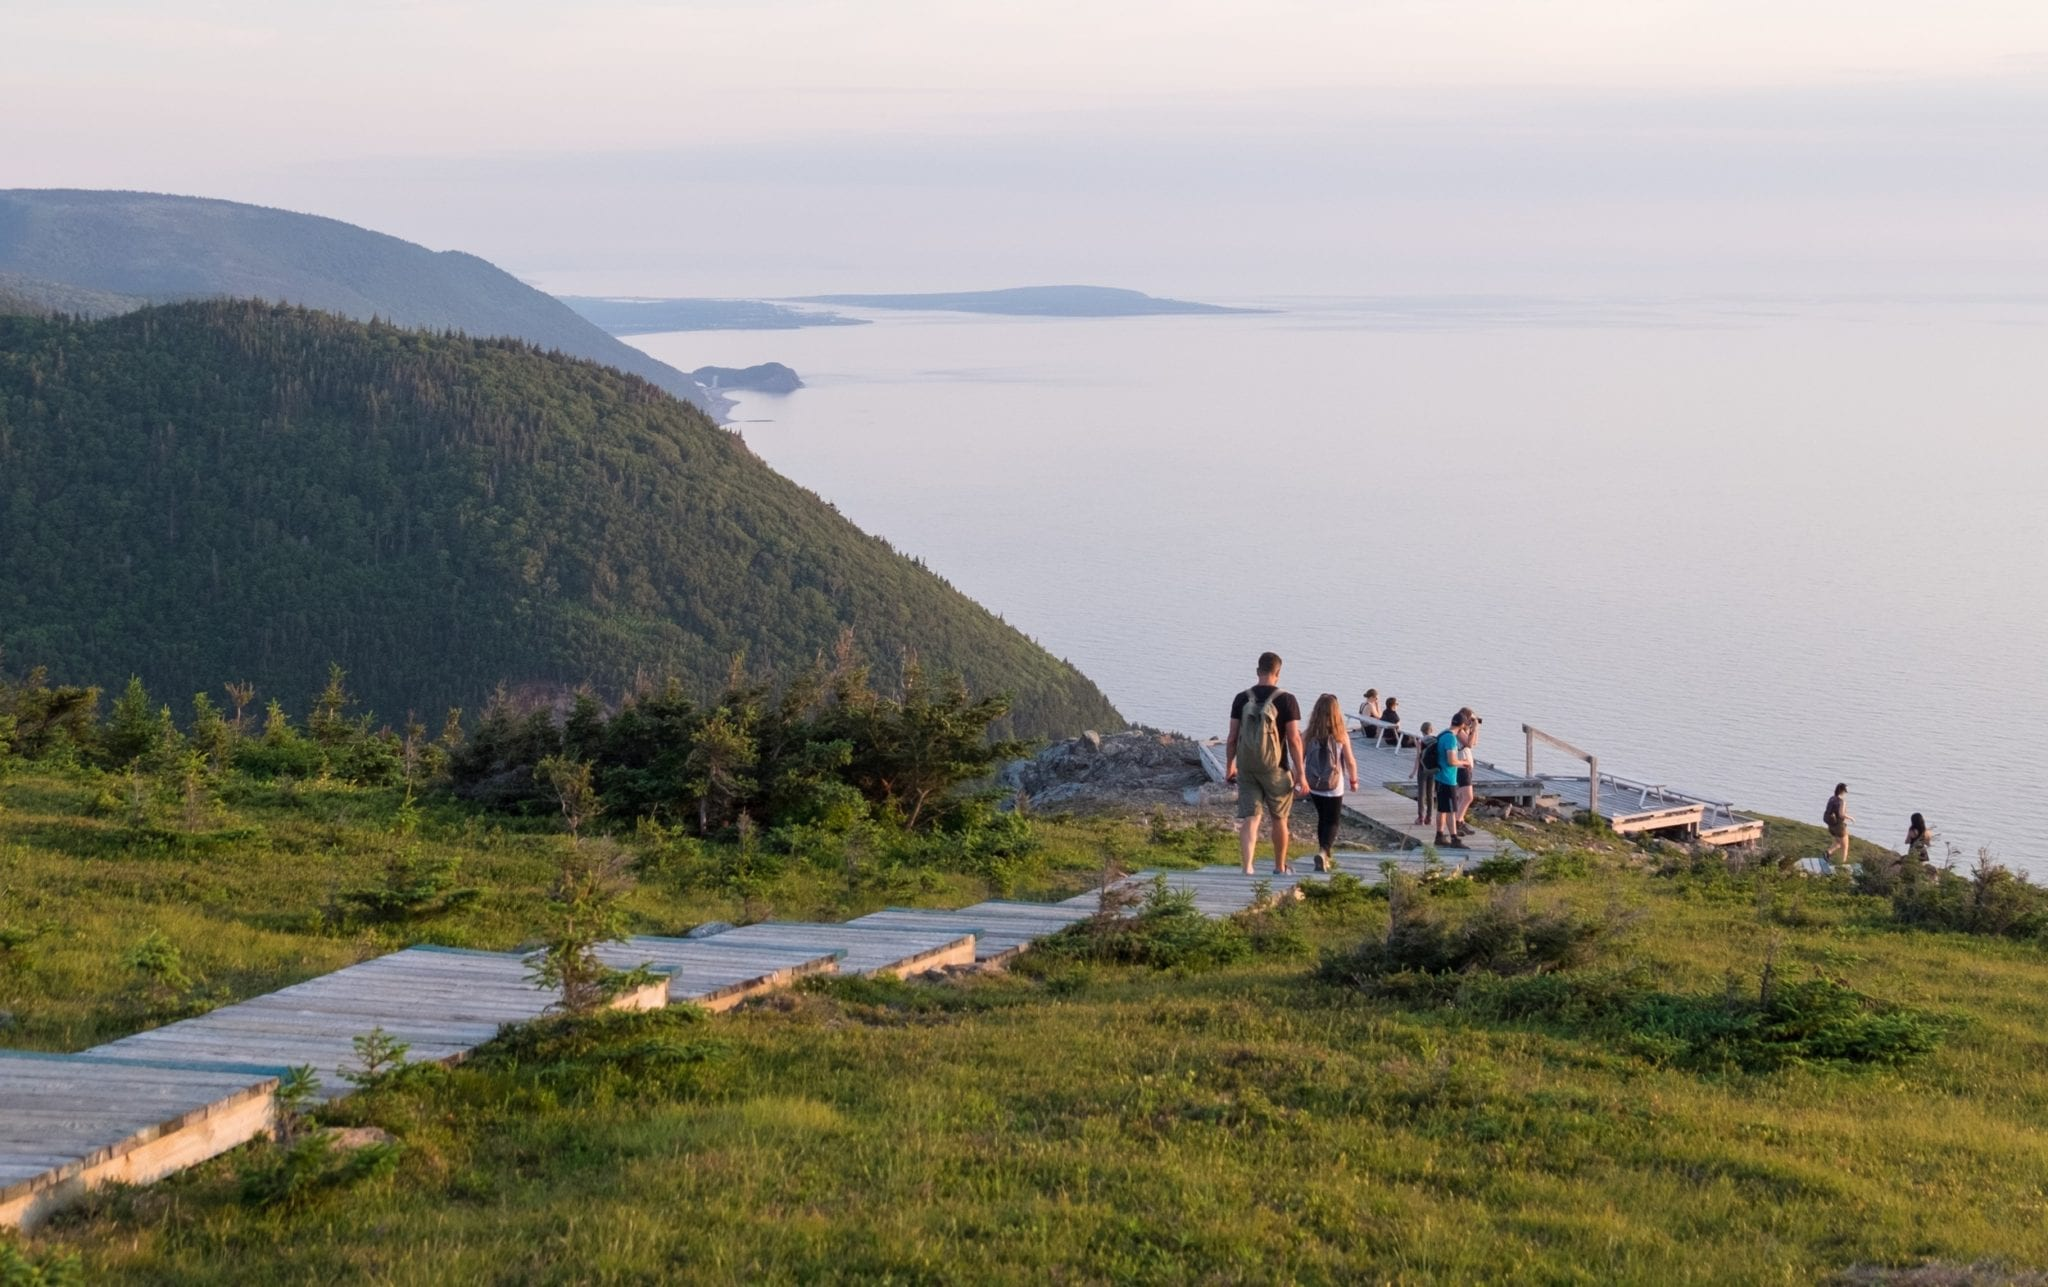 People walking down a staircase built into the hills at Cape Breton Highlands National Park.